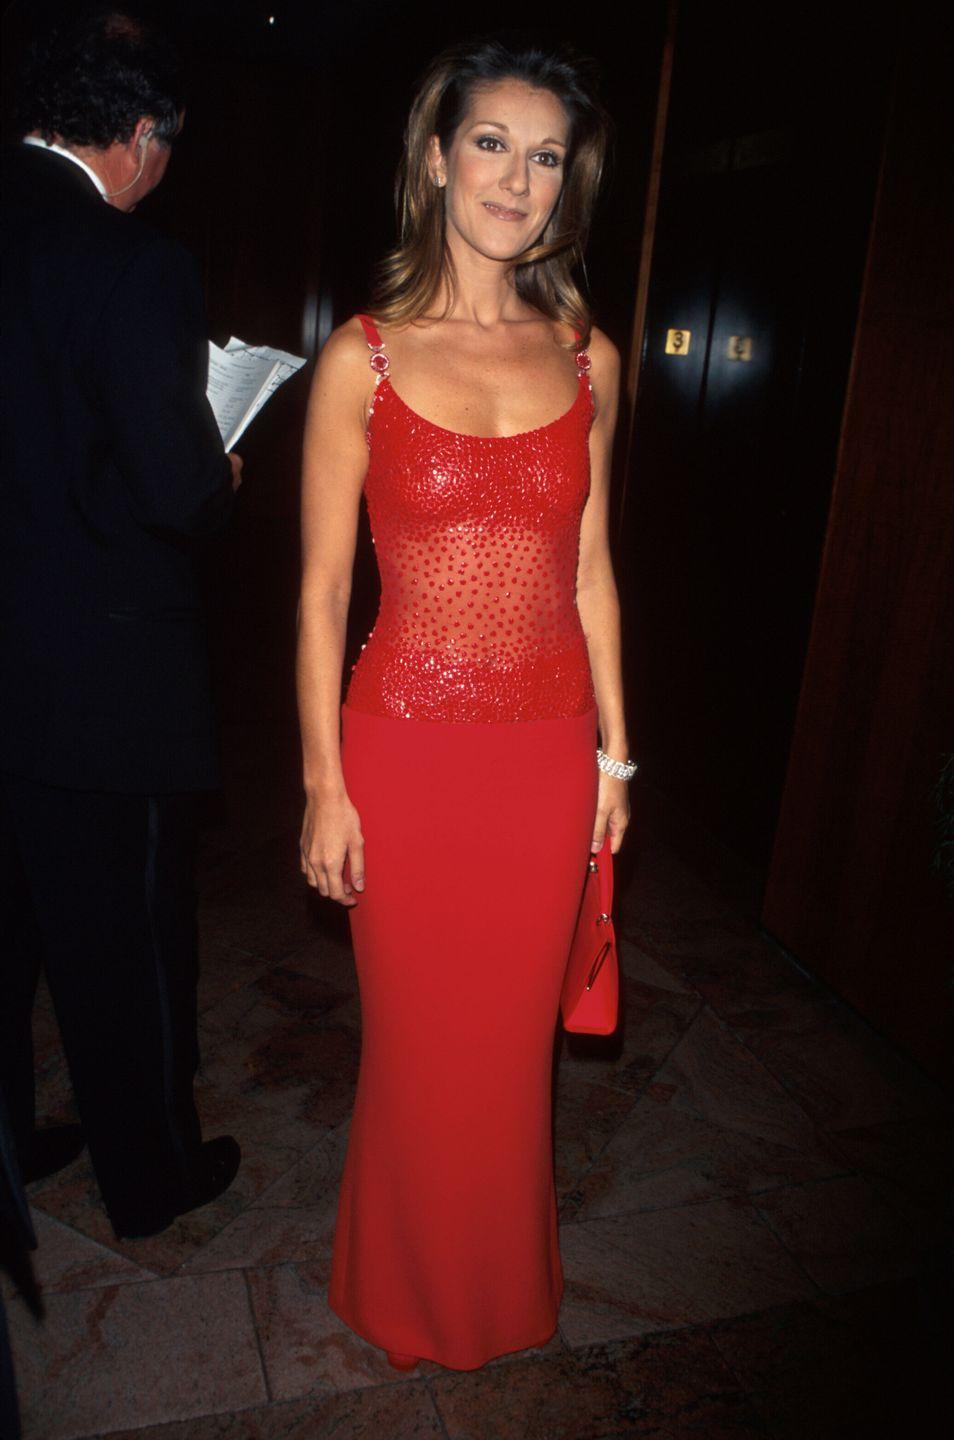 <p>In a red hot look, the singer donned a sparkling red gown that featured a sheer paneling over her stomach. </p>